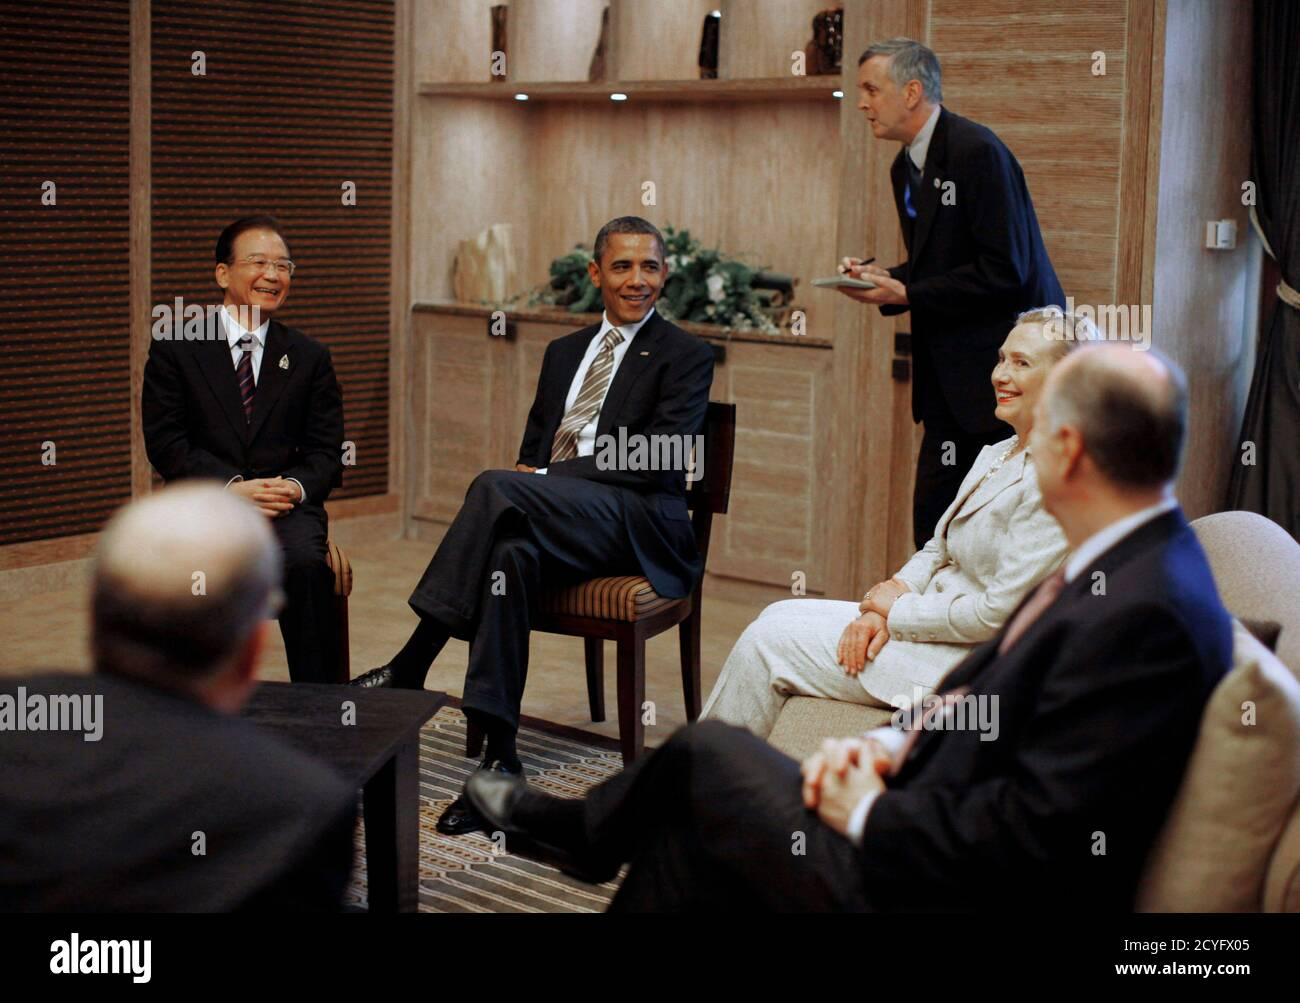 U.S. President Barack Obama (2nd L) and Secretary of State Hillary Clinton (2nd R) meet with China's Premier Wen Jiabao (L) on the sidelines of the East Asia Summit in Nusa Dua, Bali, November 19, 2011. U.S. National Security Advisor Thomas Donilon sits on the right.   REUTERS/Jason Reed   (INDONESIA - Tags: POLITICS) Banque D'Images